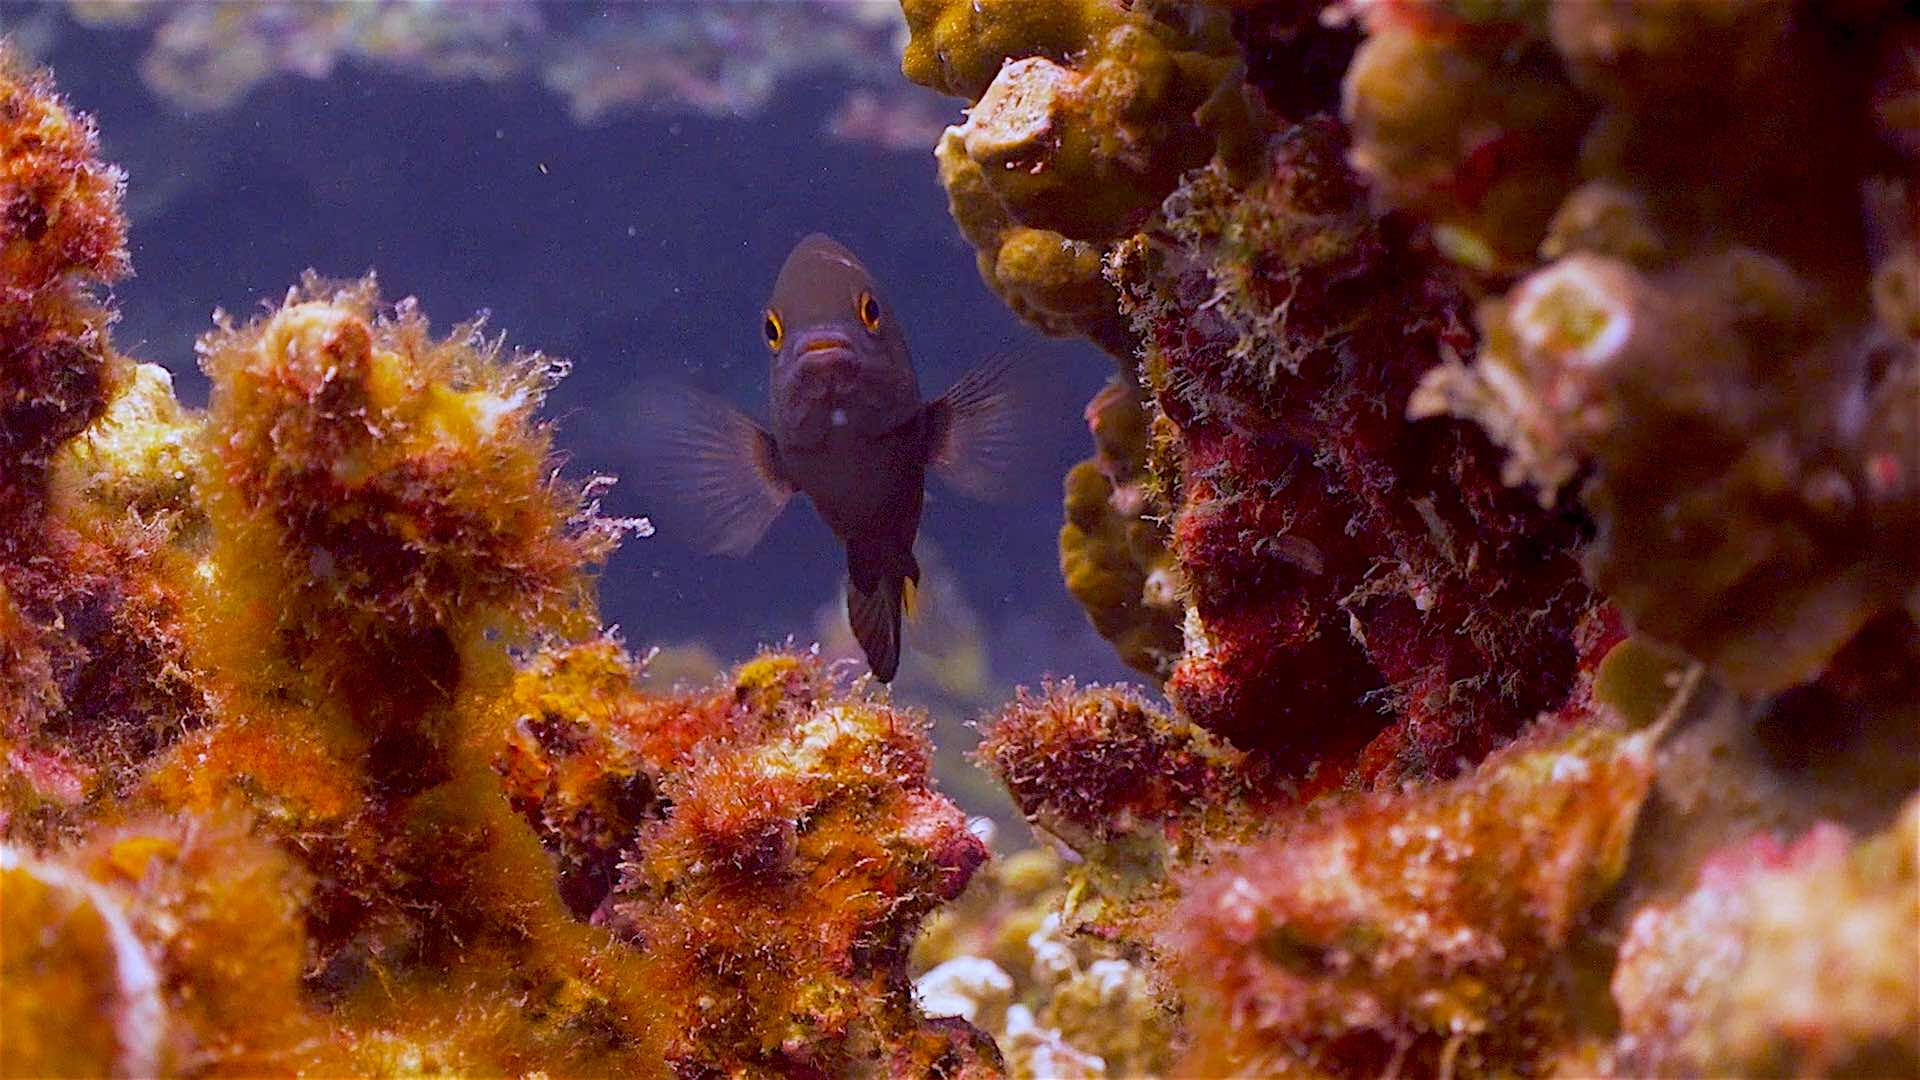 www.thefunkyturtle.com Mango Bay dive site koh tao beautiful coral reefs